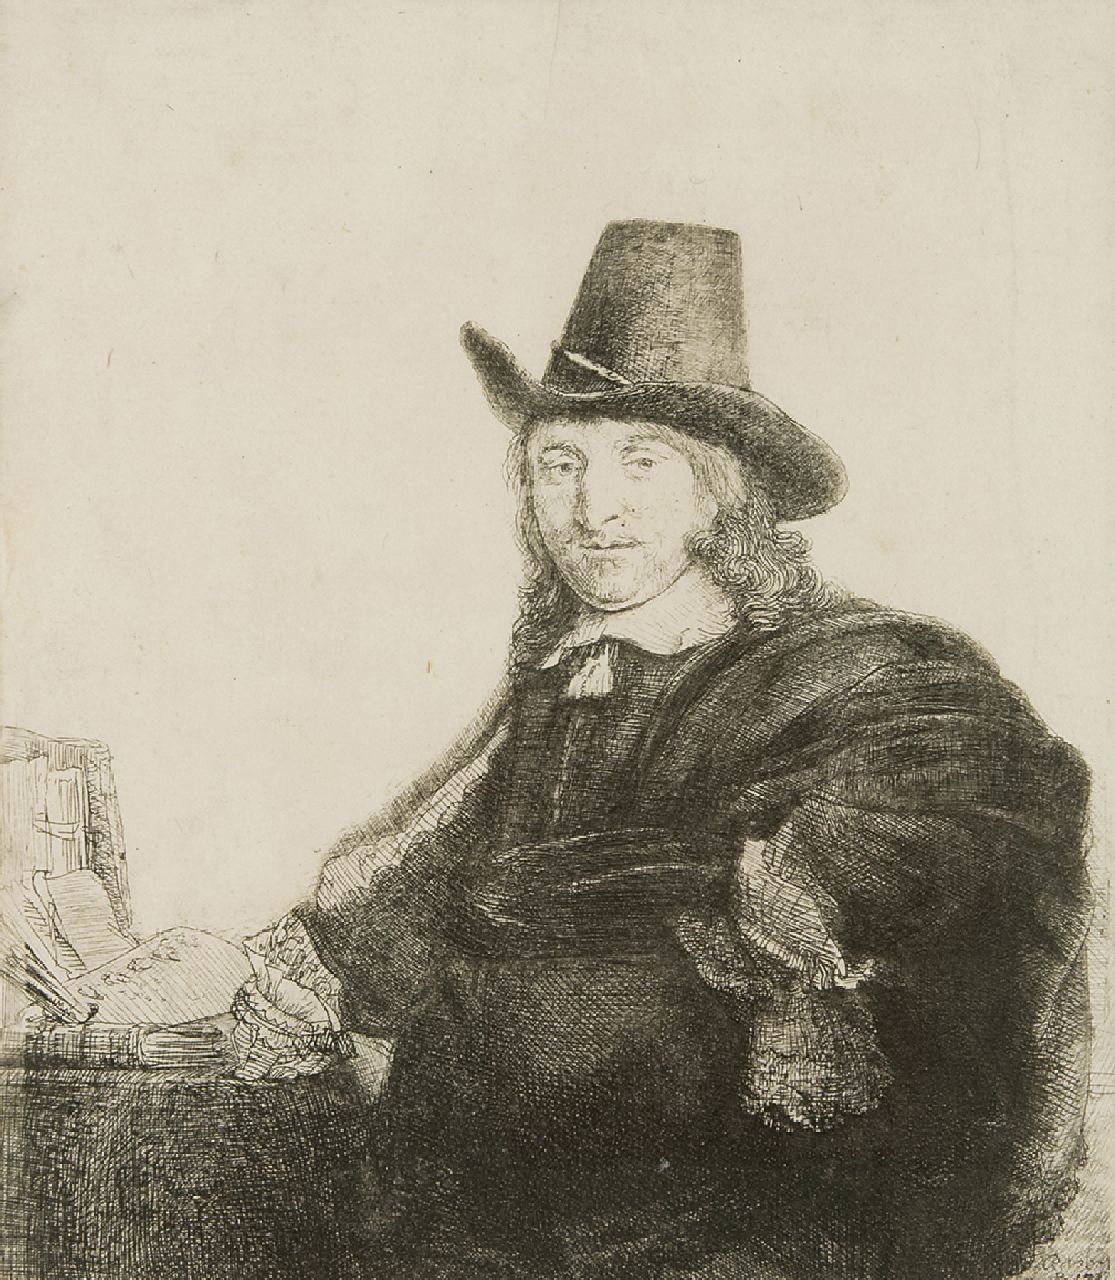 Rembrandt (Rembrandt Harmensz. van Rijn)   | Rembrandt (Rembrandt Harmensz. van Rijn) | Prints and Multiples offered for sale | The painter Jan Asselijn, also called 'Krabbetje', etching 19.2 x 16.4 cm, signed l.r. in the plate